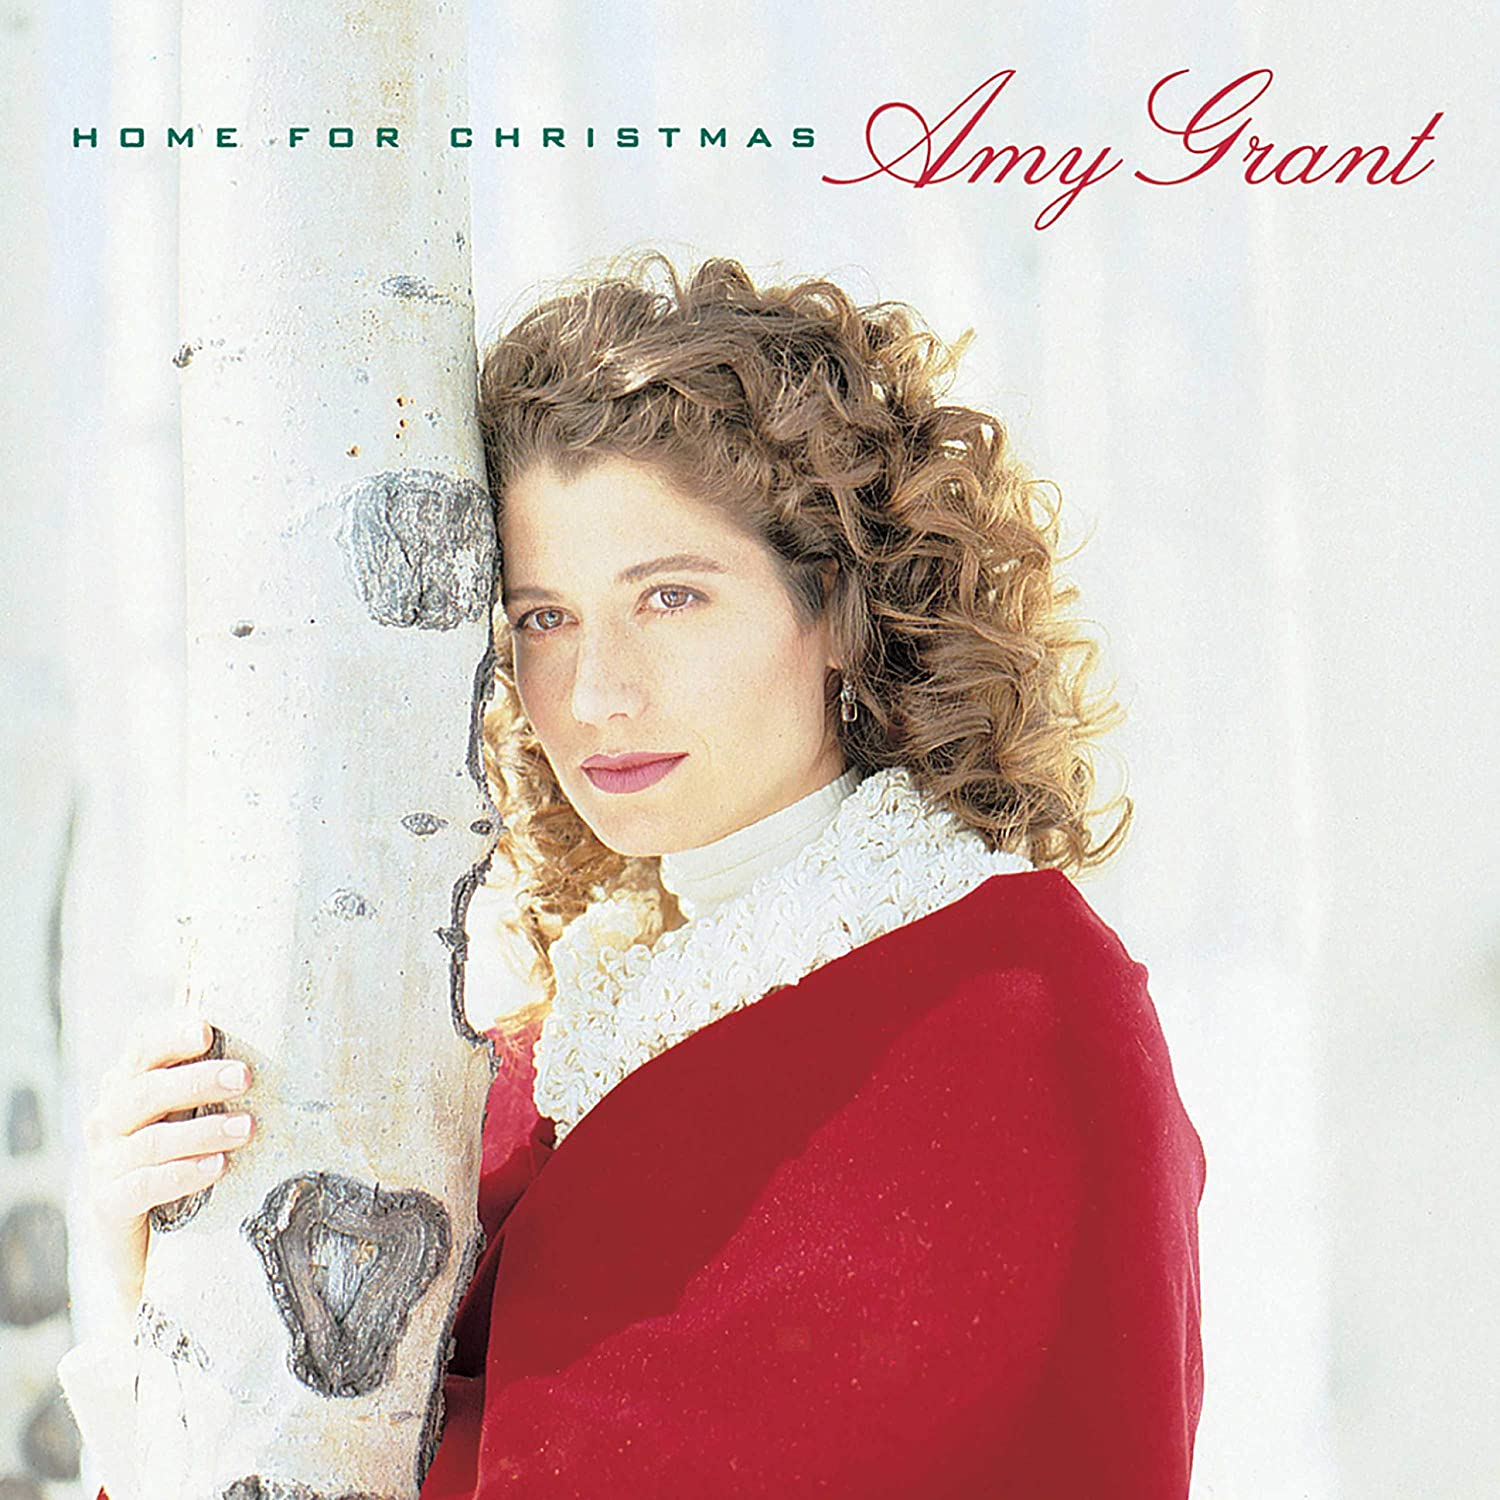 Grant, Amy/Home for Christmas [LP]